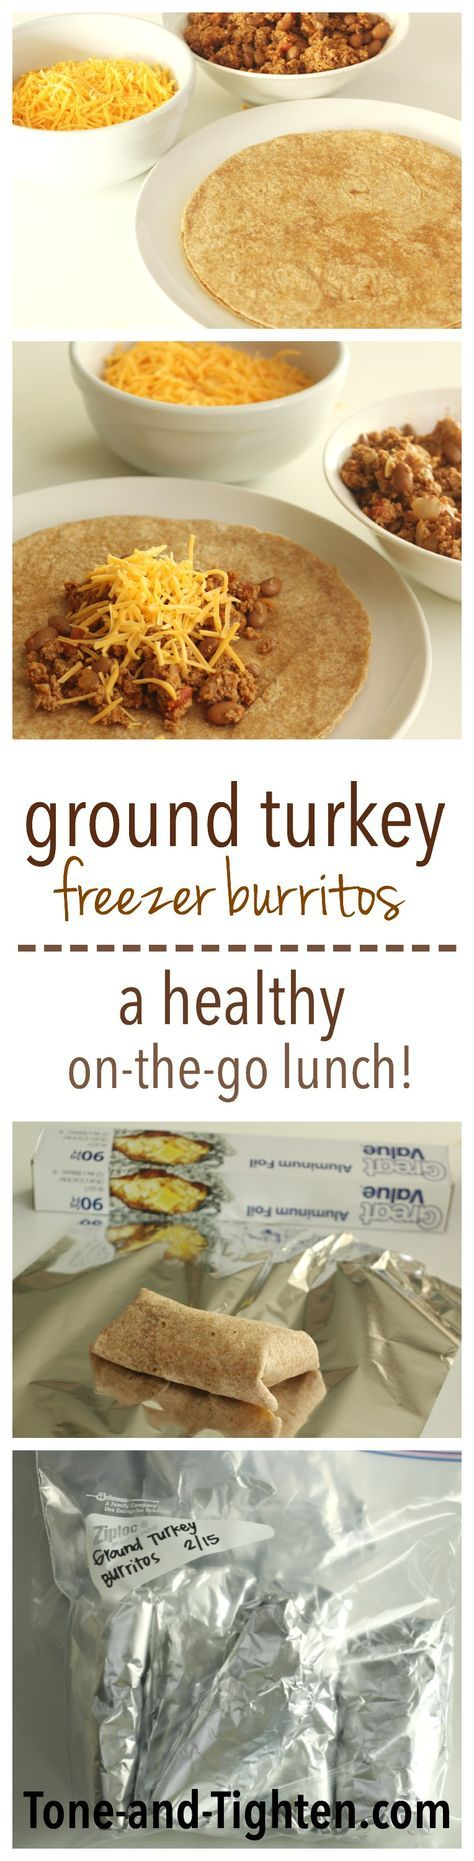 Ground Turkey Freezer Burritos on Tone-and-Tighten.com - a healthy on-the-go lunch or dinner idea!